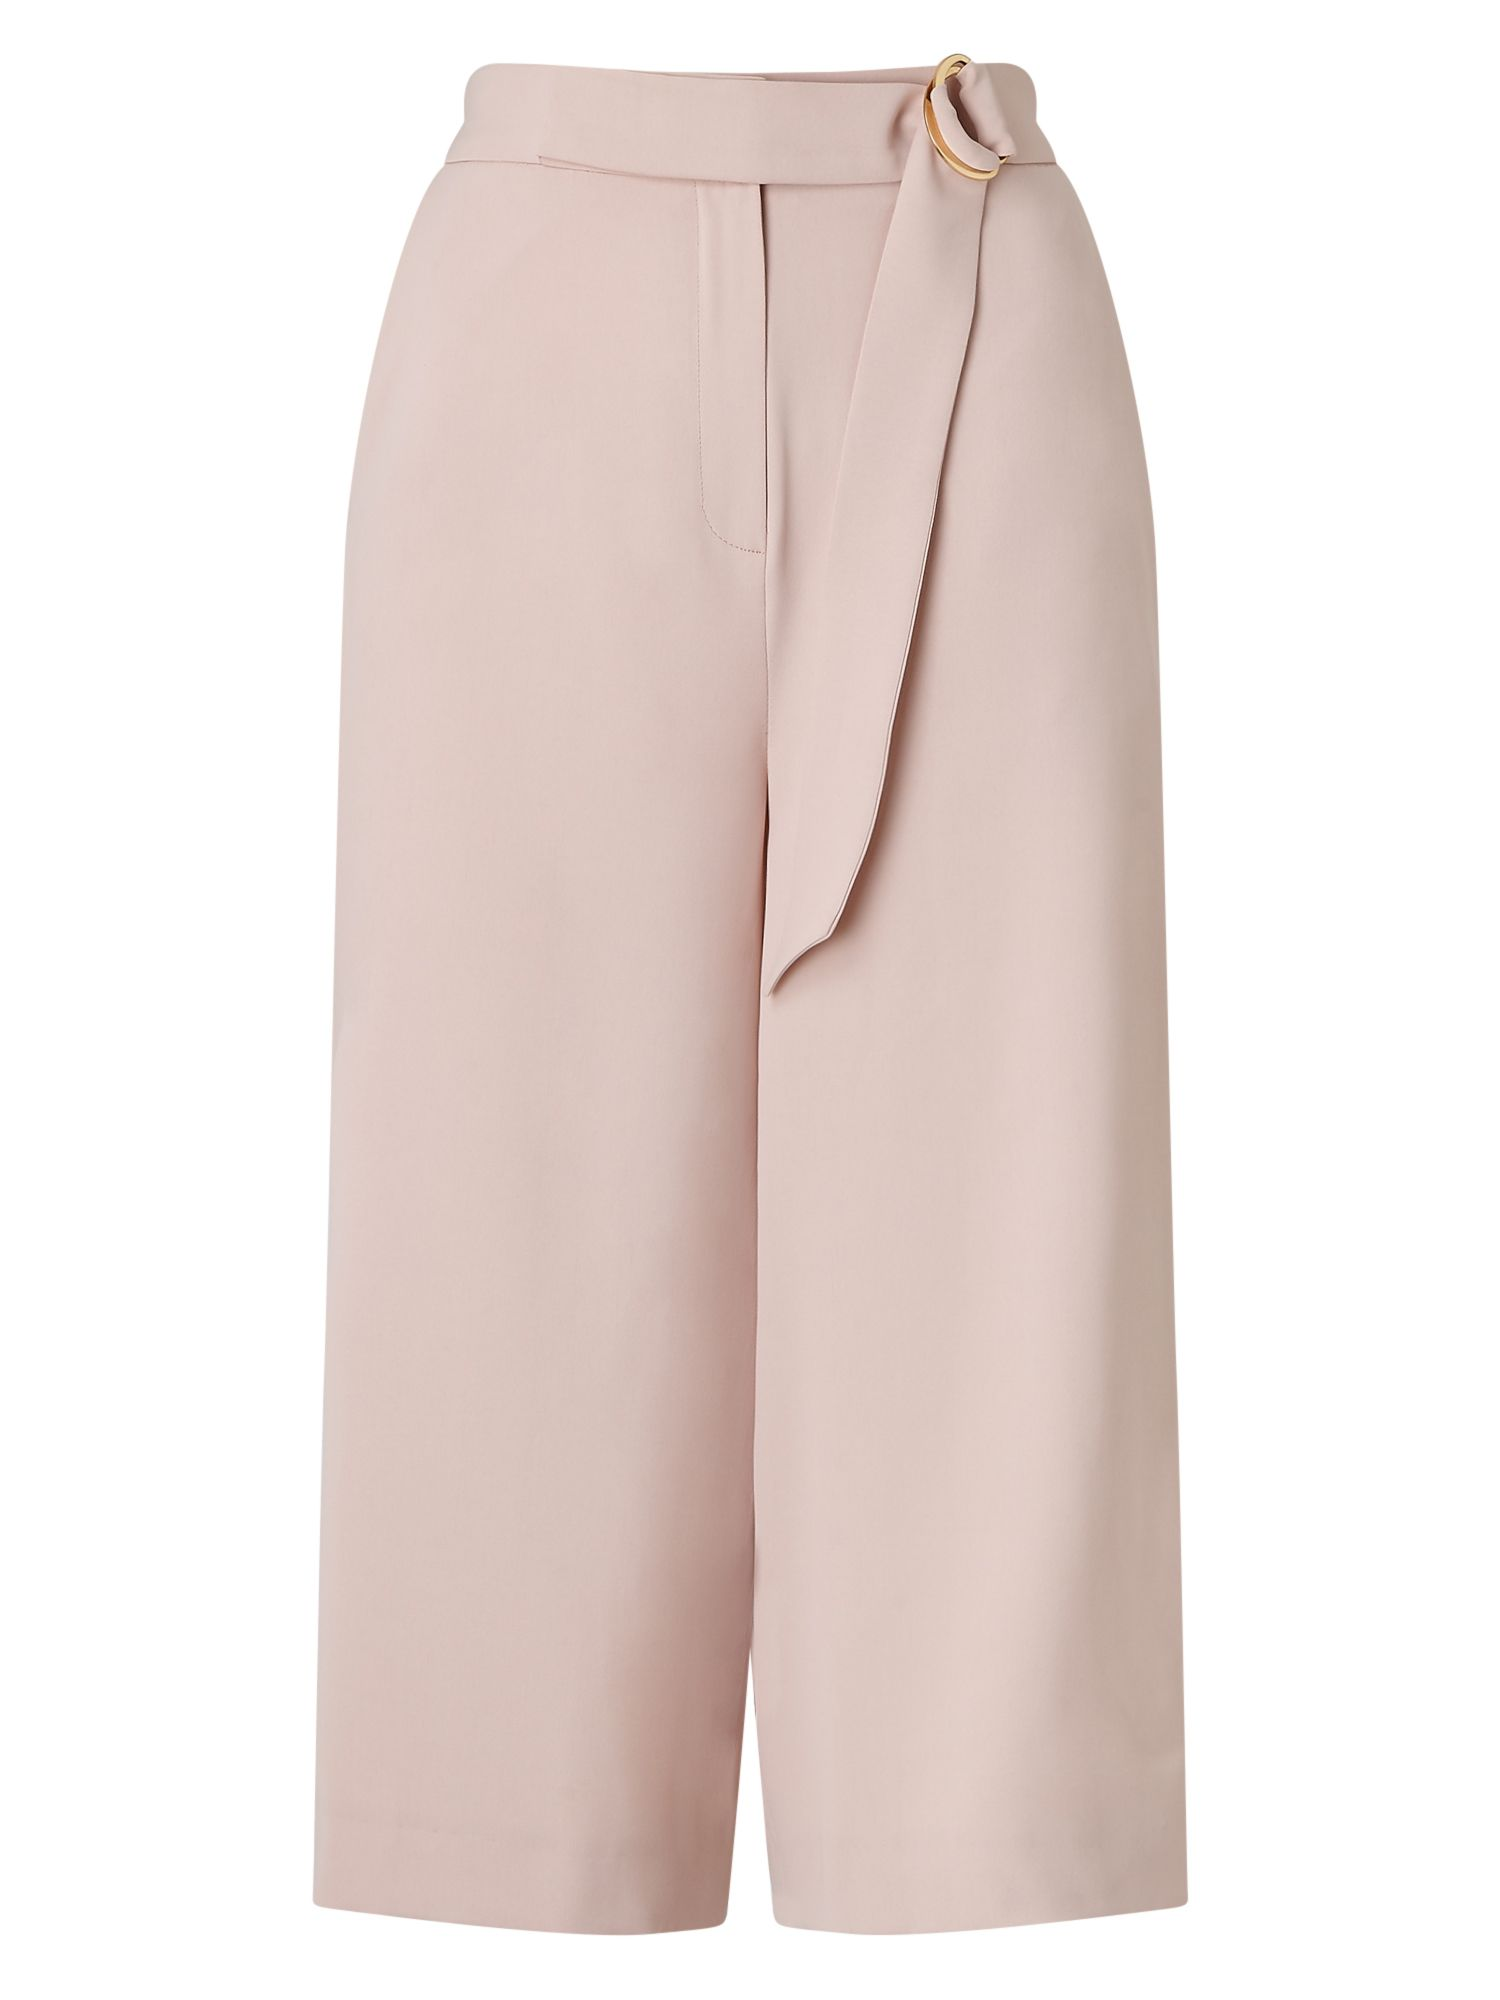 Eastex Belted Culottes, Pink